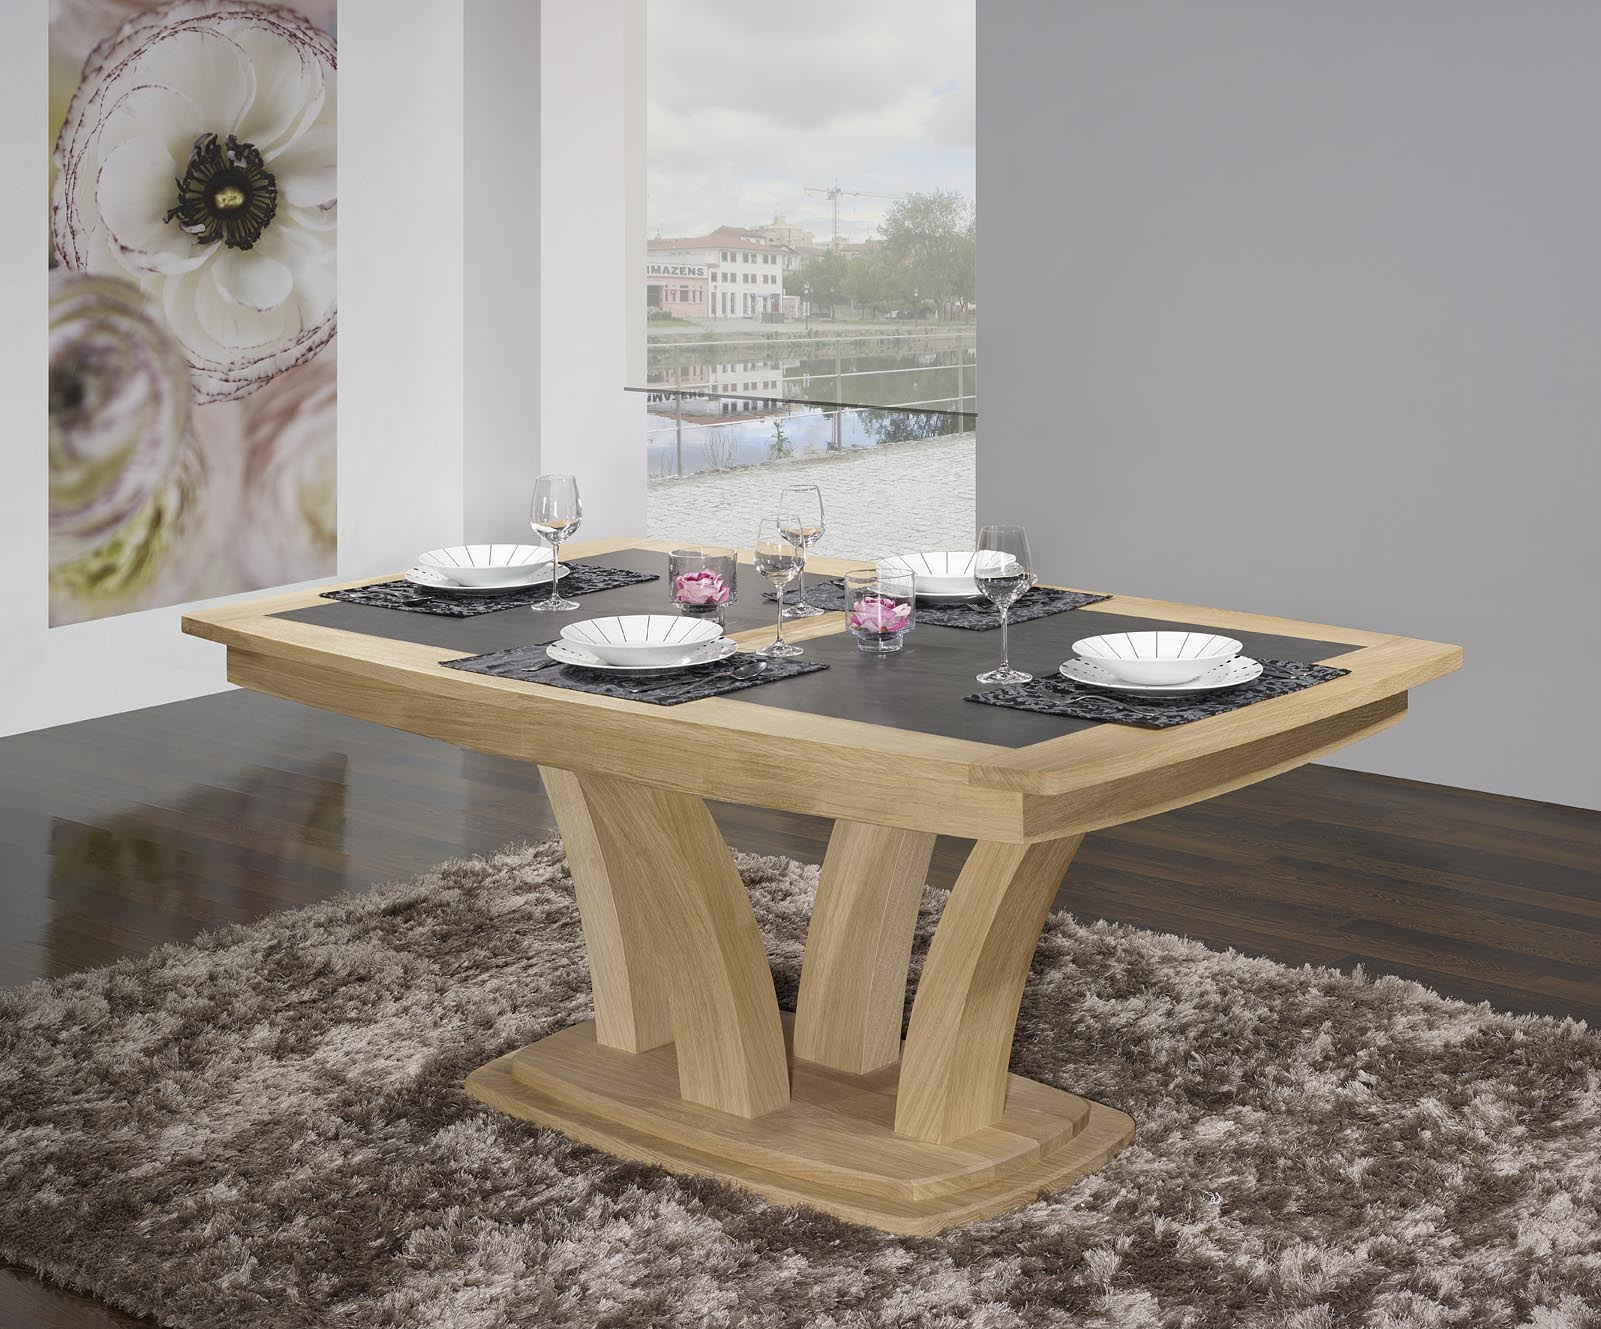 table de repas contemporaine 160x110 en ch ne massif avec c ramique finition chene traditionnel. Black Bedroom Furniture Sets. Home Design Ideas